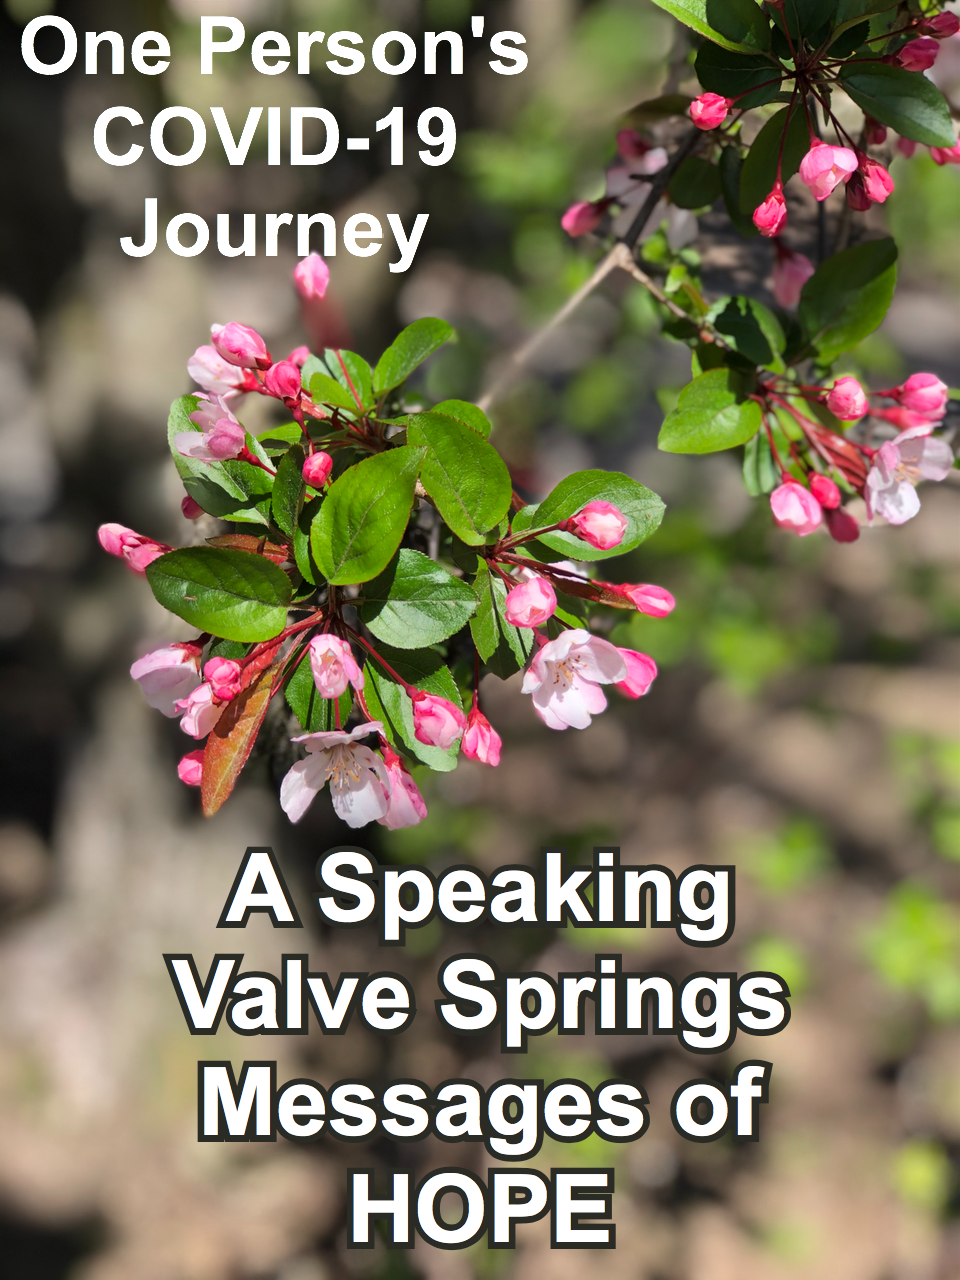 A spring flowering tree is a symbol of bringing hope in these dark pandemic. Rehabilitation methods, such as the use of a speaking valve on a trach, can bring hope.